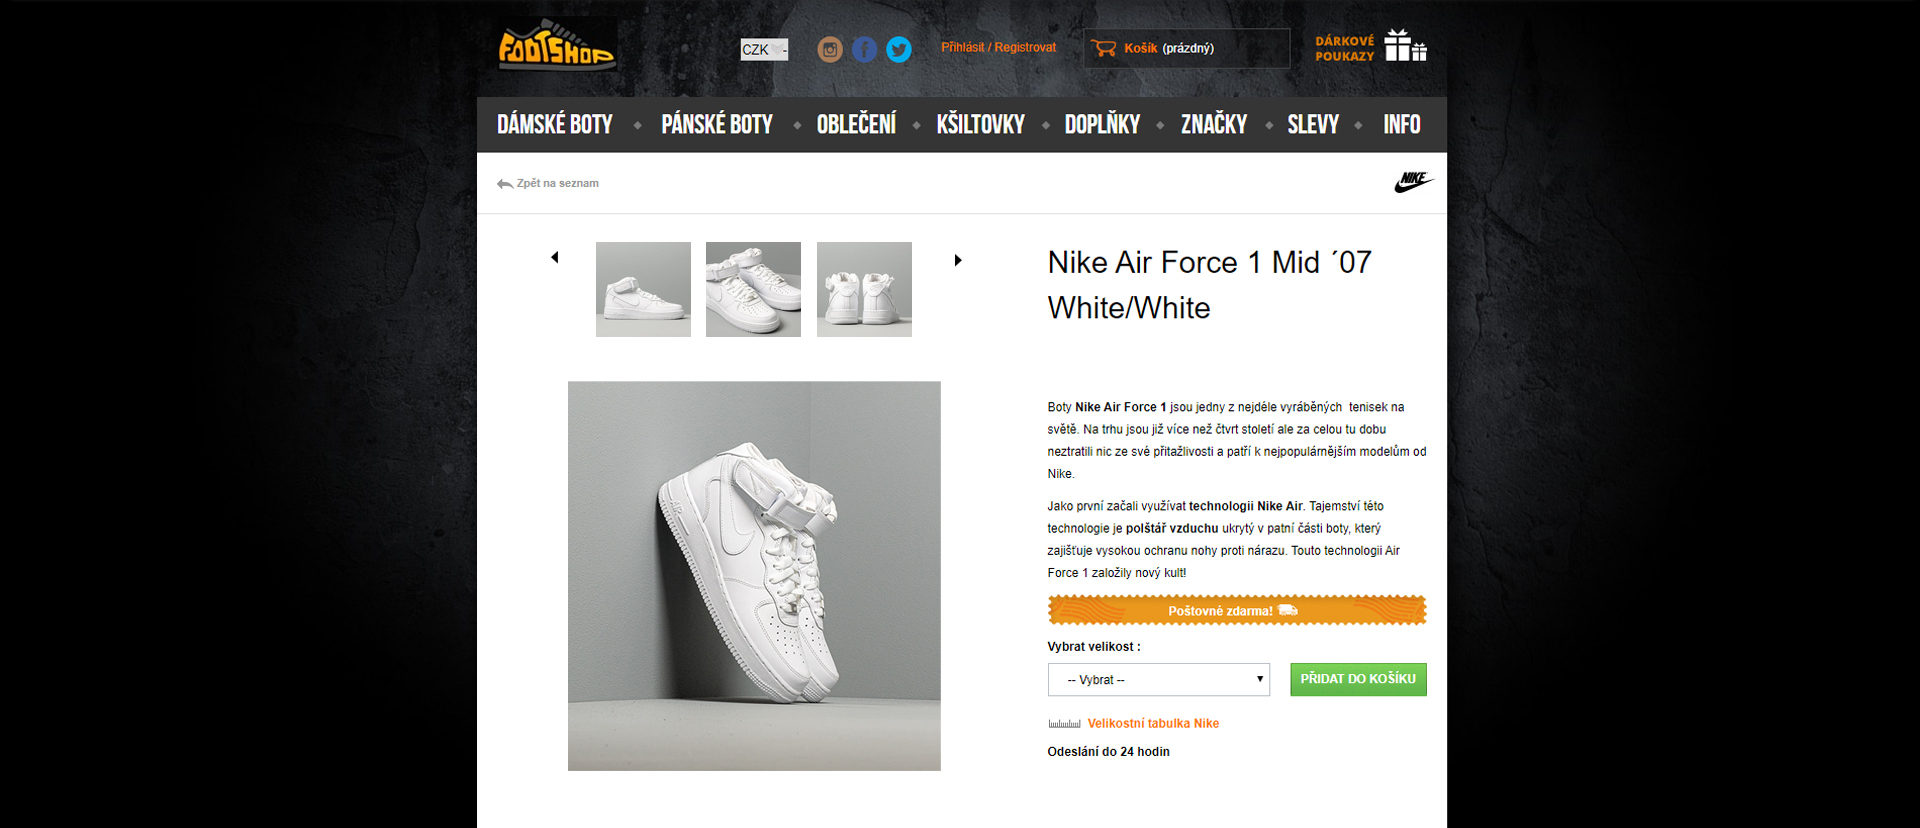 ecommerce website product page before redesign